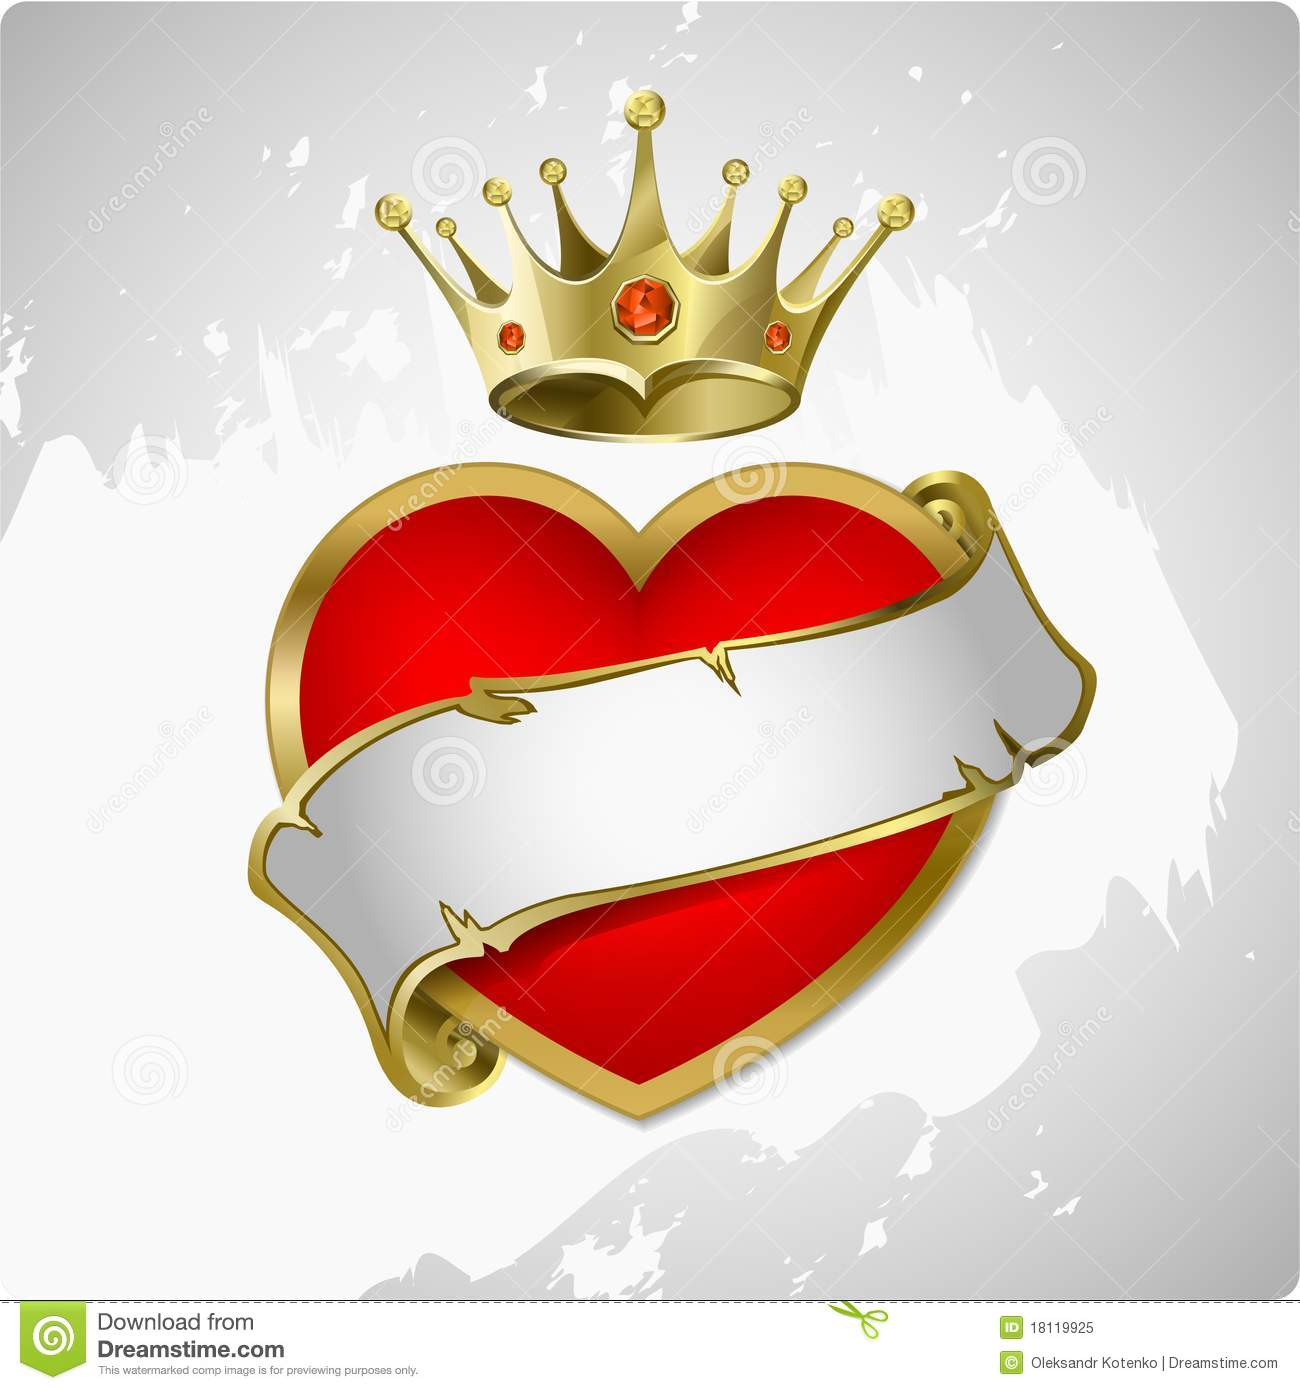 Red Heart With A Gold Crown. Royalty Free Stock Photo - Image ...